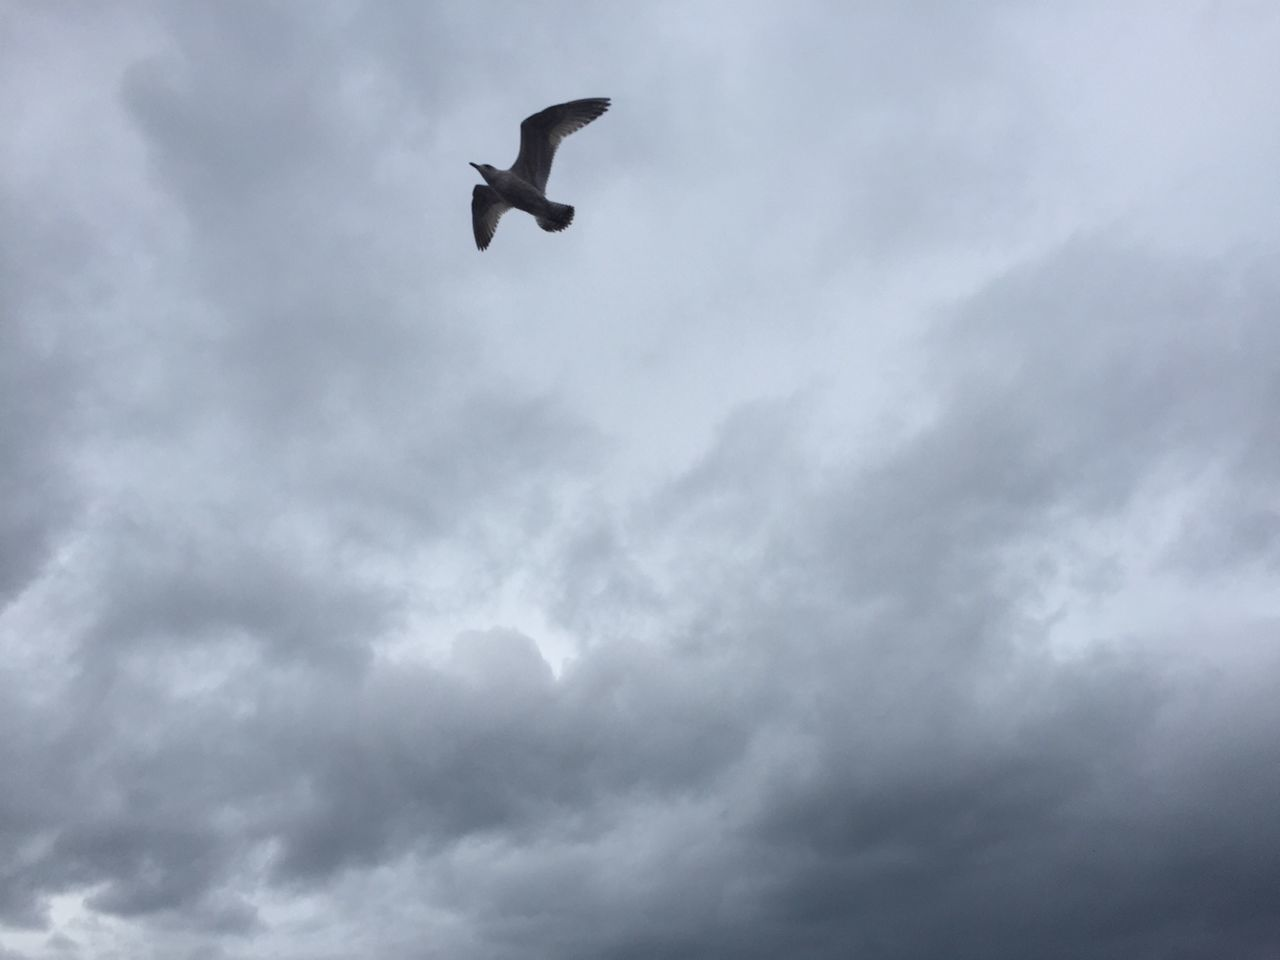 flying, low angle view, animals in the wild, cloud - sky, spread wings, sky, bird, one animal, animal themes, no people, day, mid-air, animal wildlife, nature, outdoors, airplane, beauty in nature